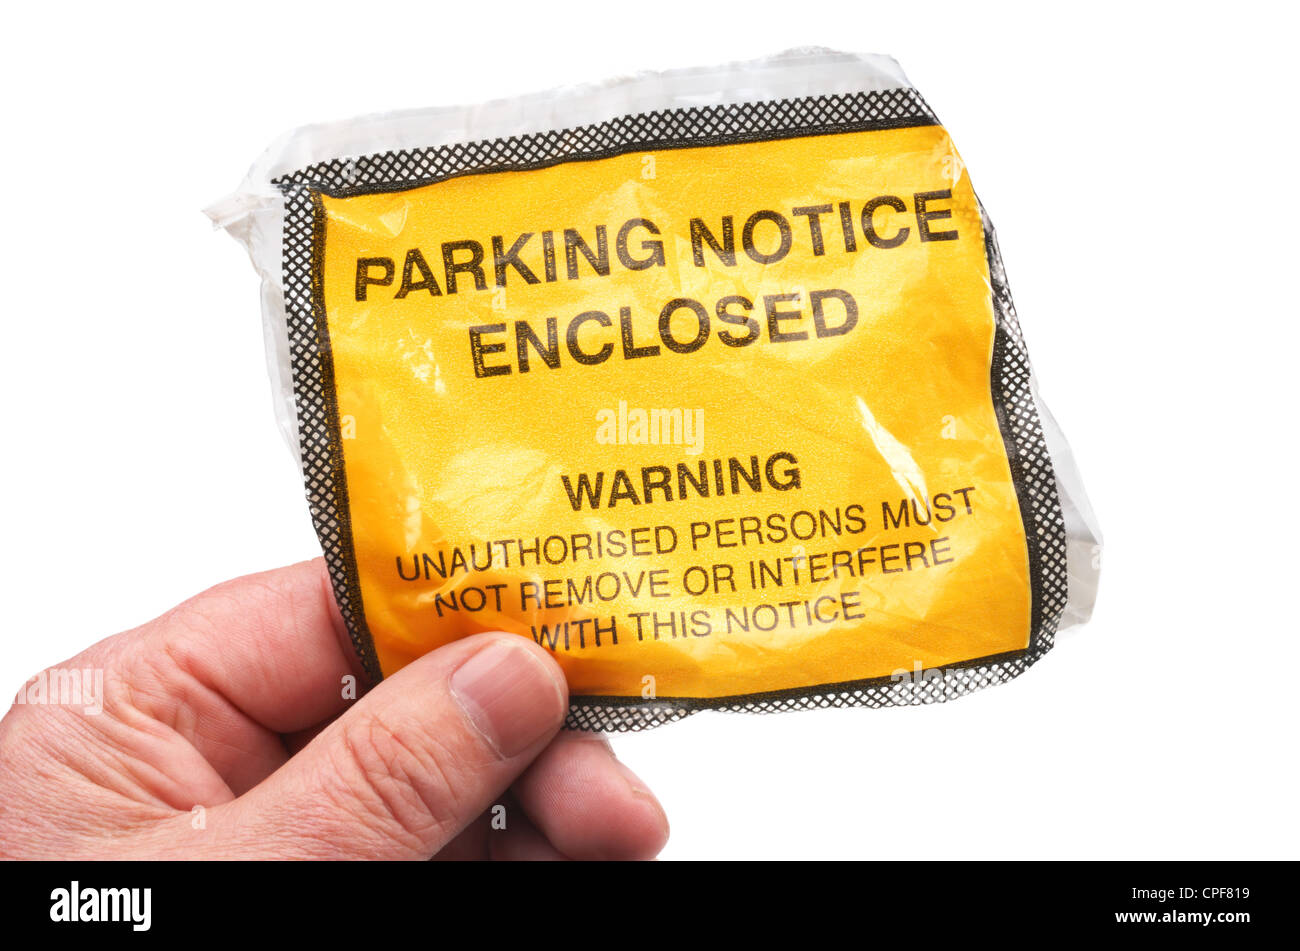 Parking Ticket - John Gollop - Stock Image